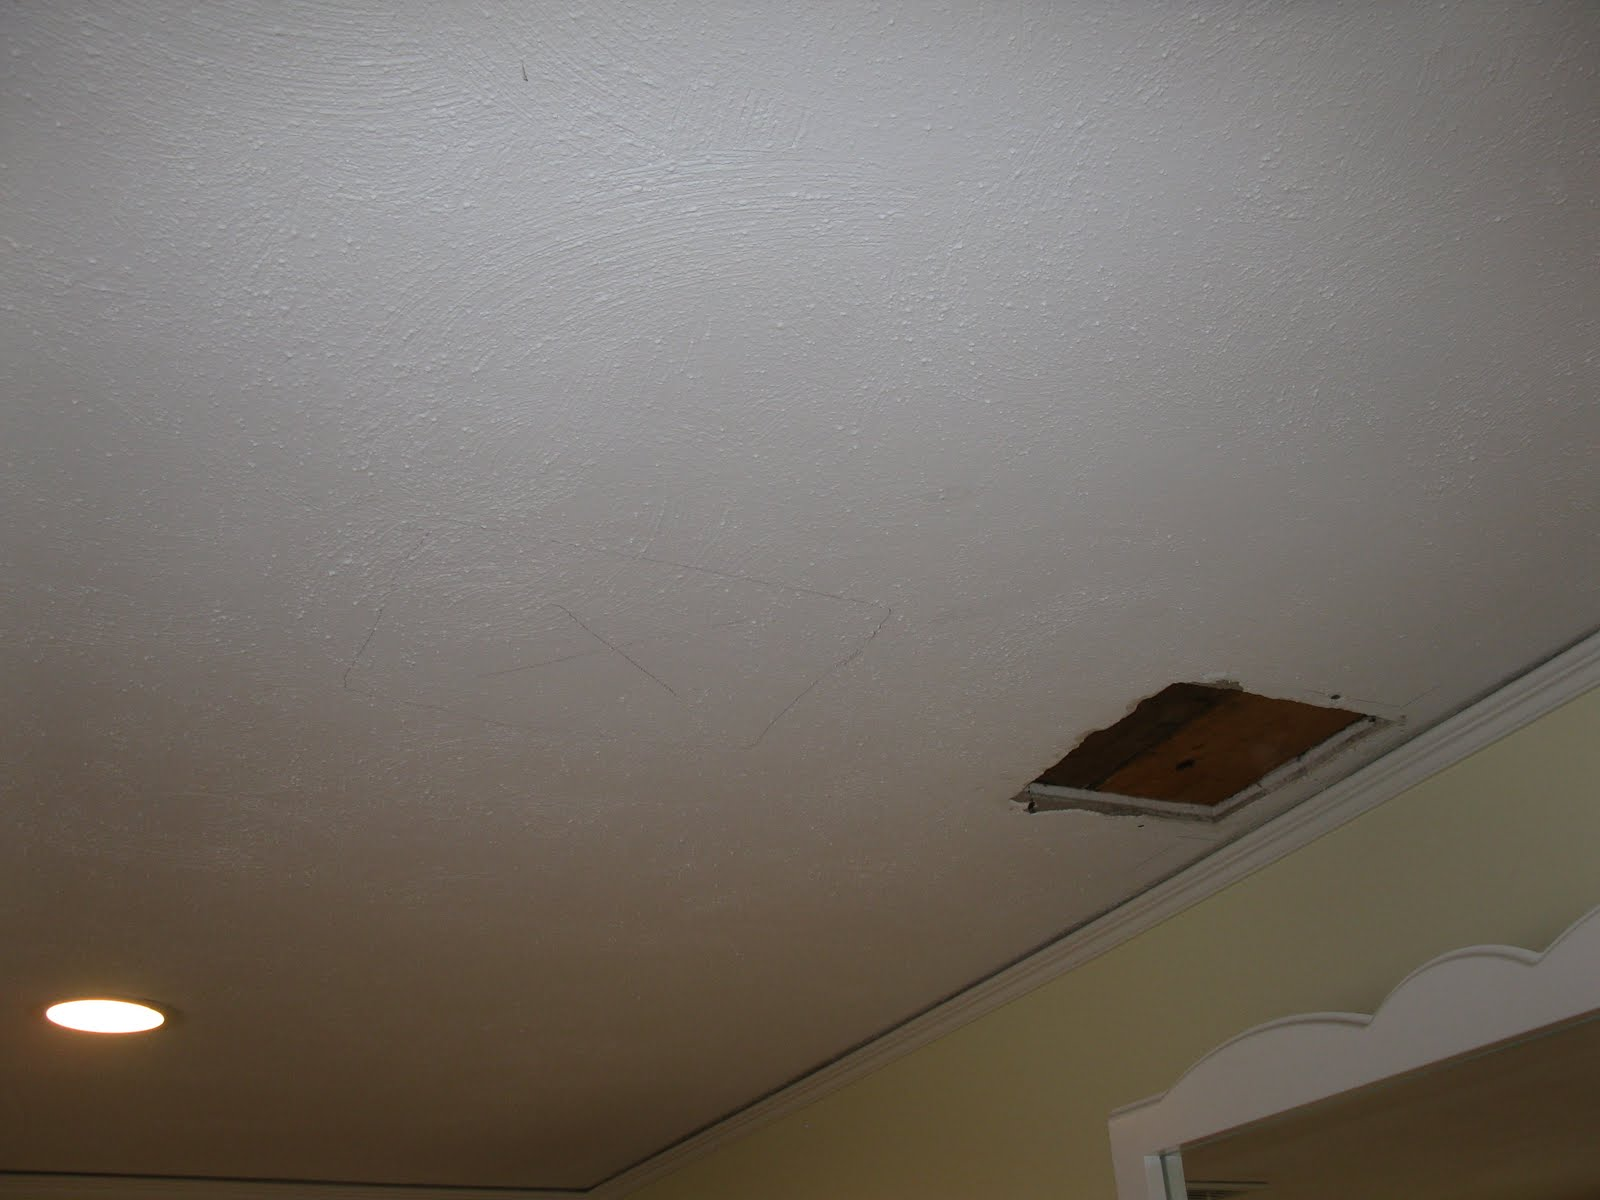 How to cut base molding around wall vent - After Thinking This Through We Determined That We Had Enough Duct To Completely Move The Vent To Another Wall In The Room Centered In The Room Over This